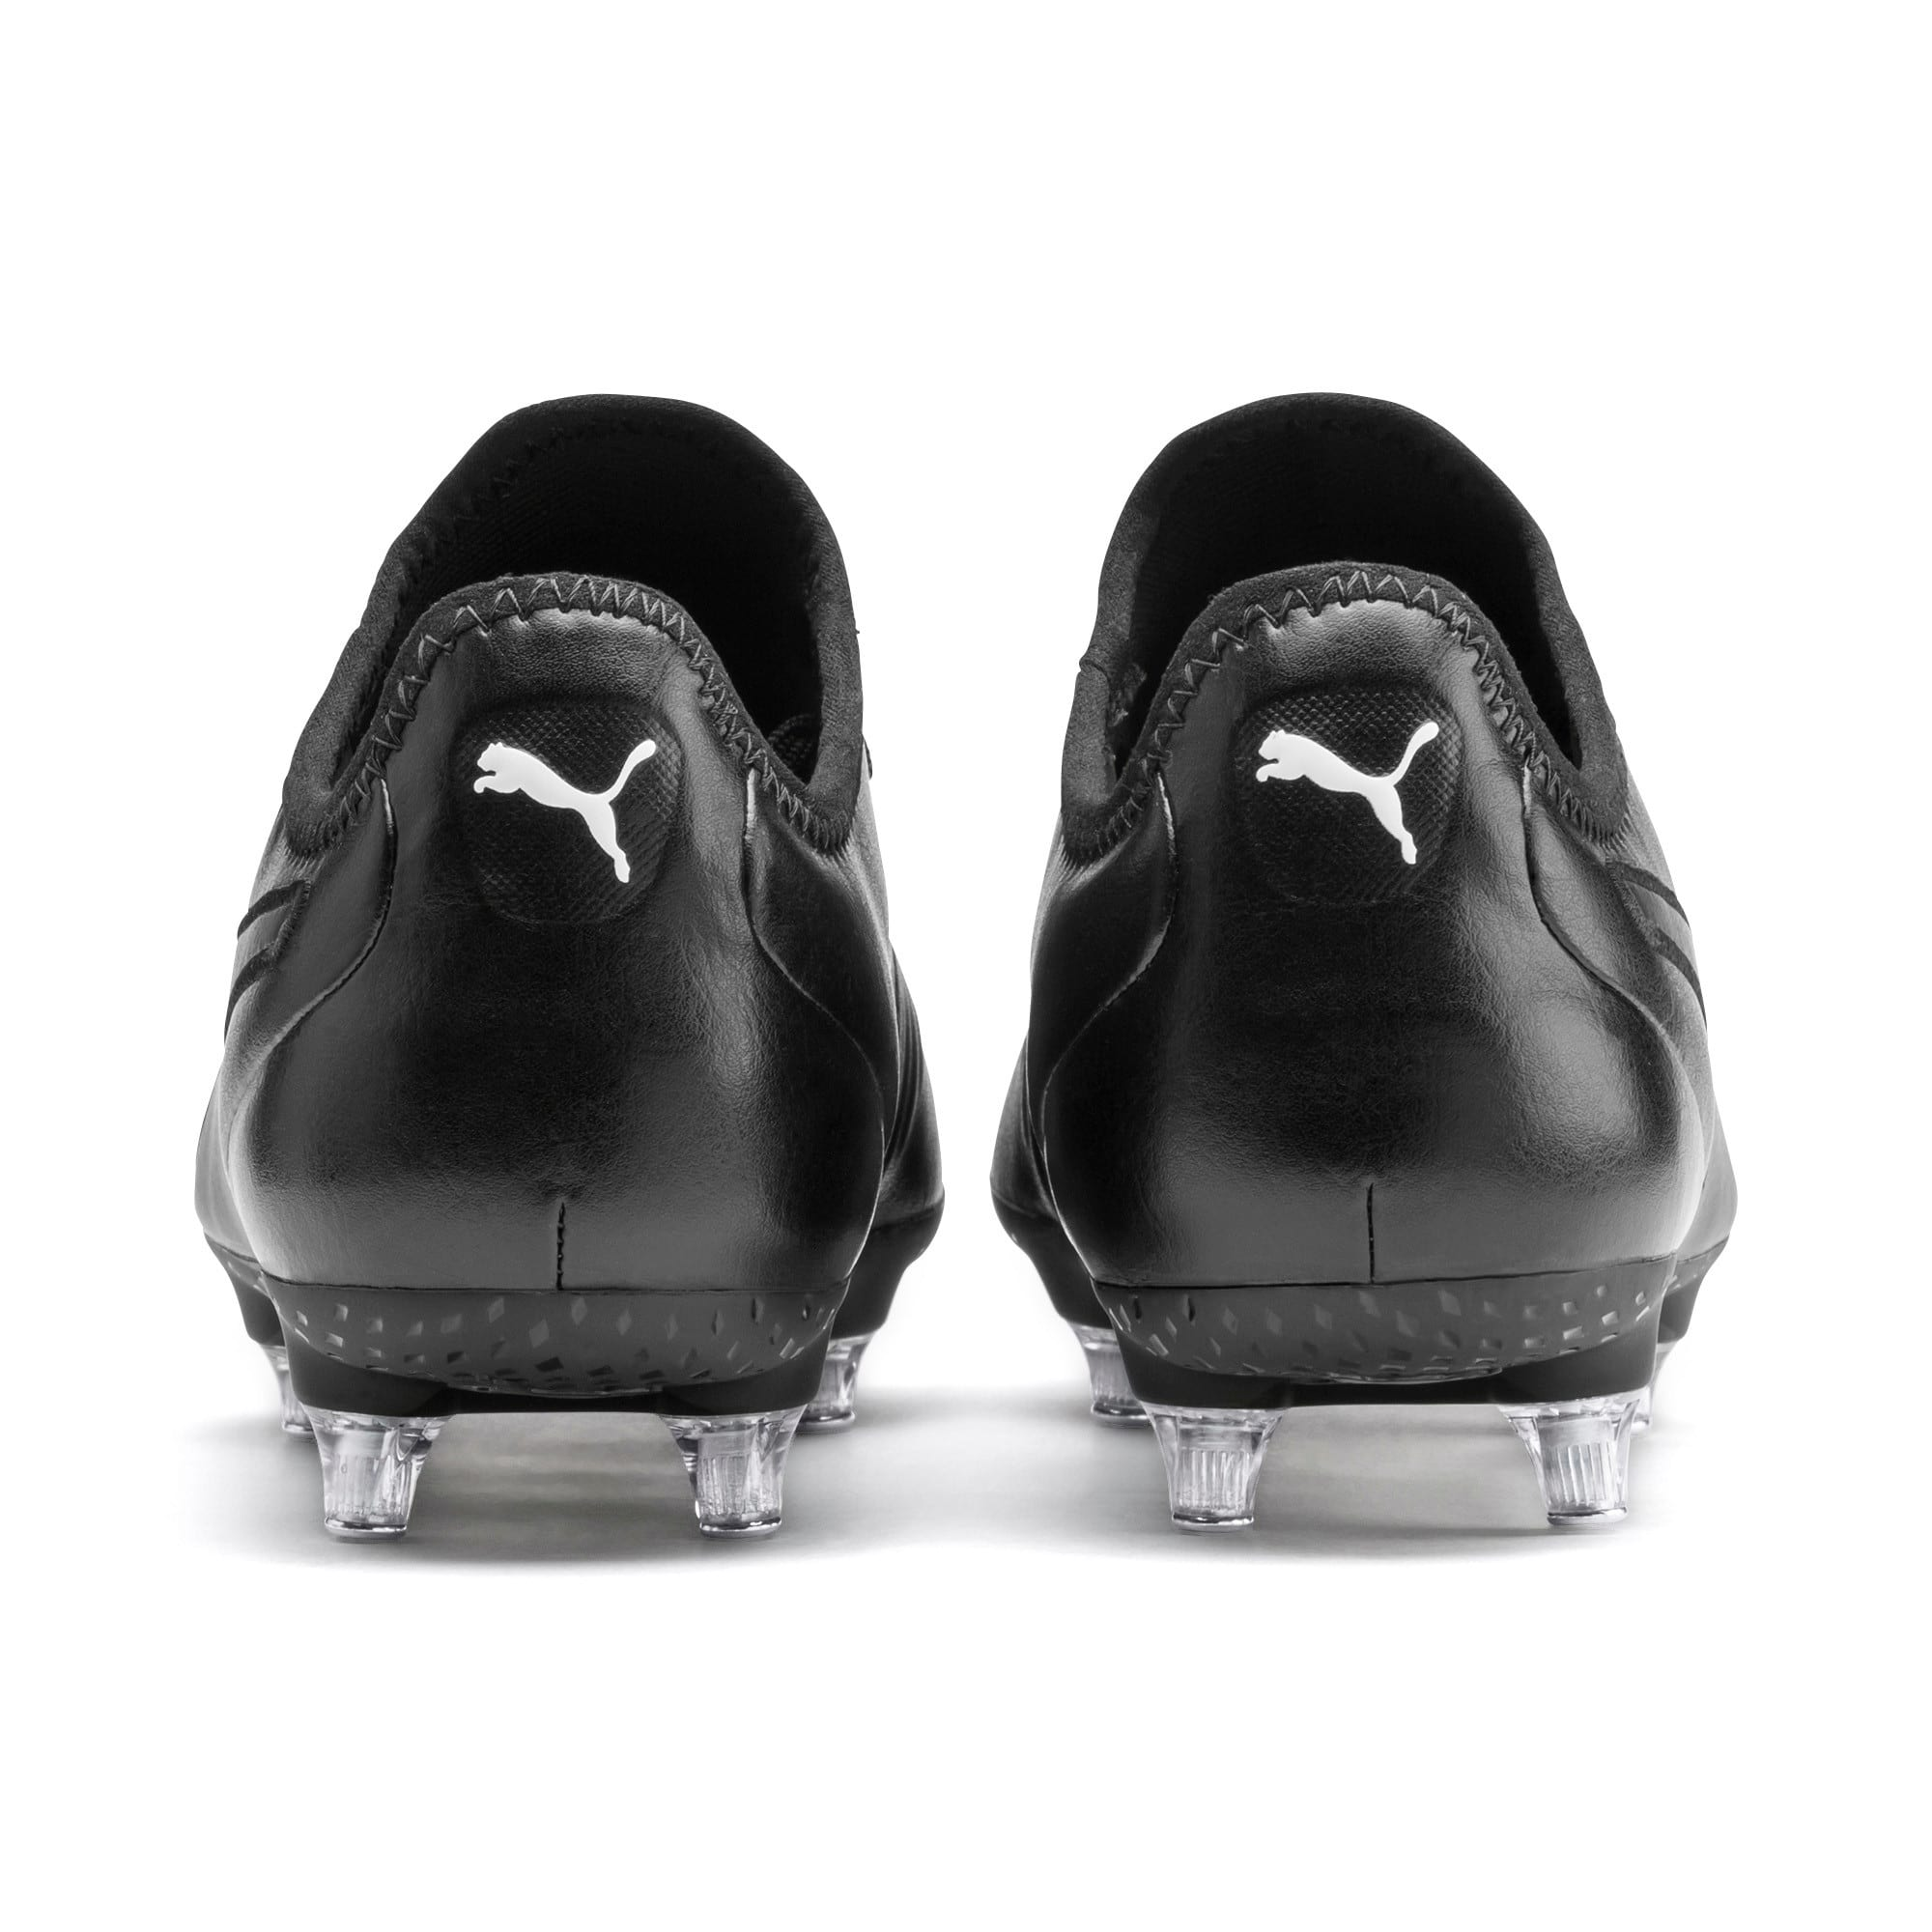 Thumbnail 4 of KING SG Men's Football Boots, Puma Black-Puma White, medium